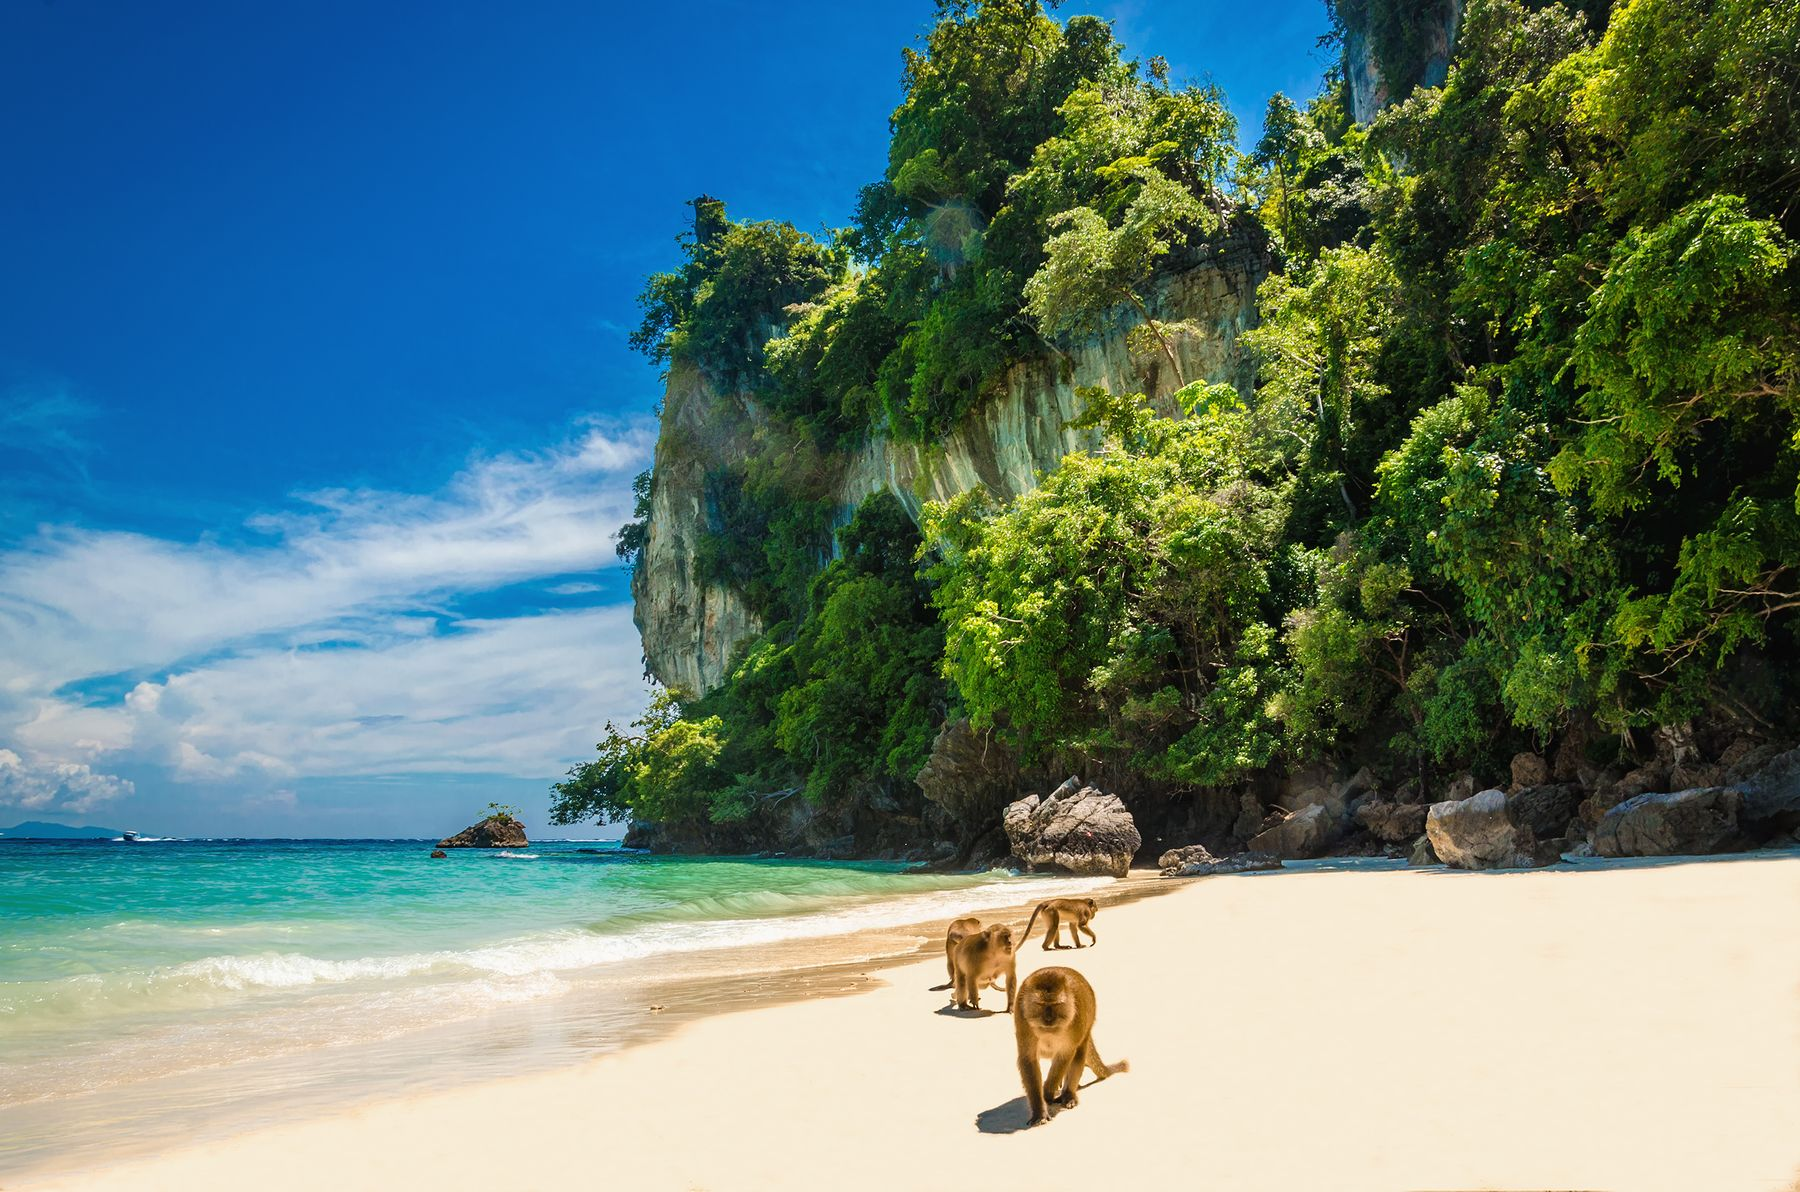 Monkeys in the sand, Phi Phi islands, Thailand - 12 of the most beautiful beaches in the world